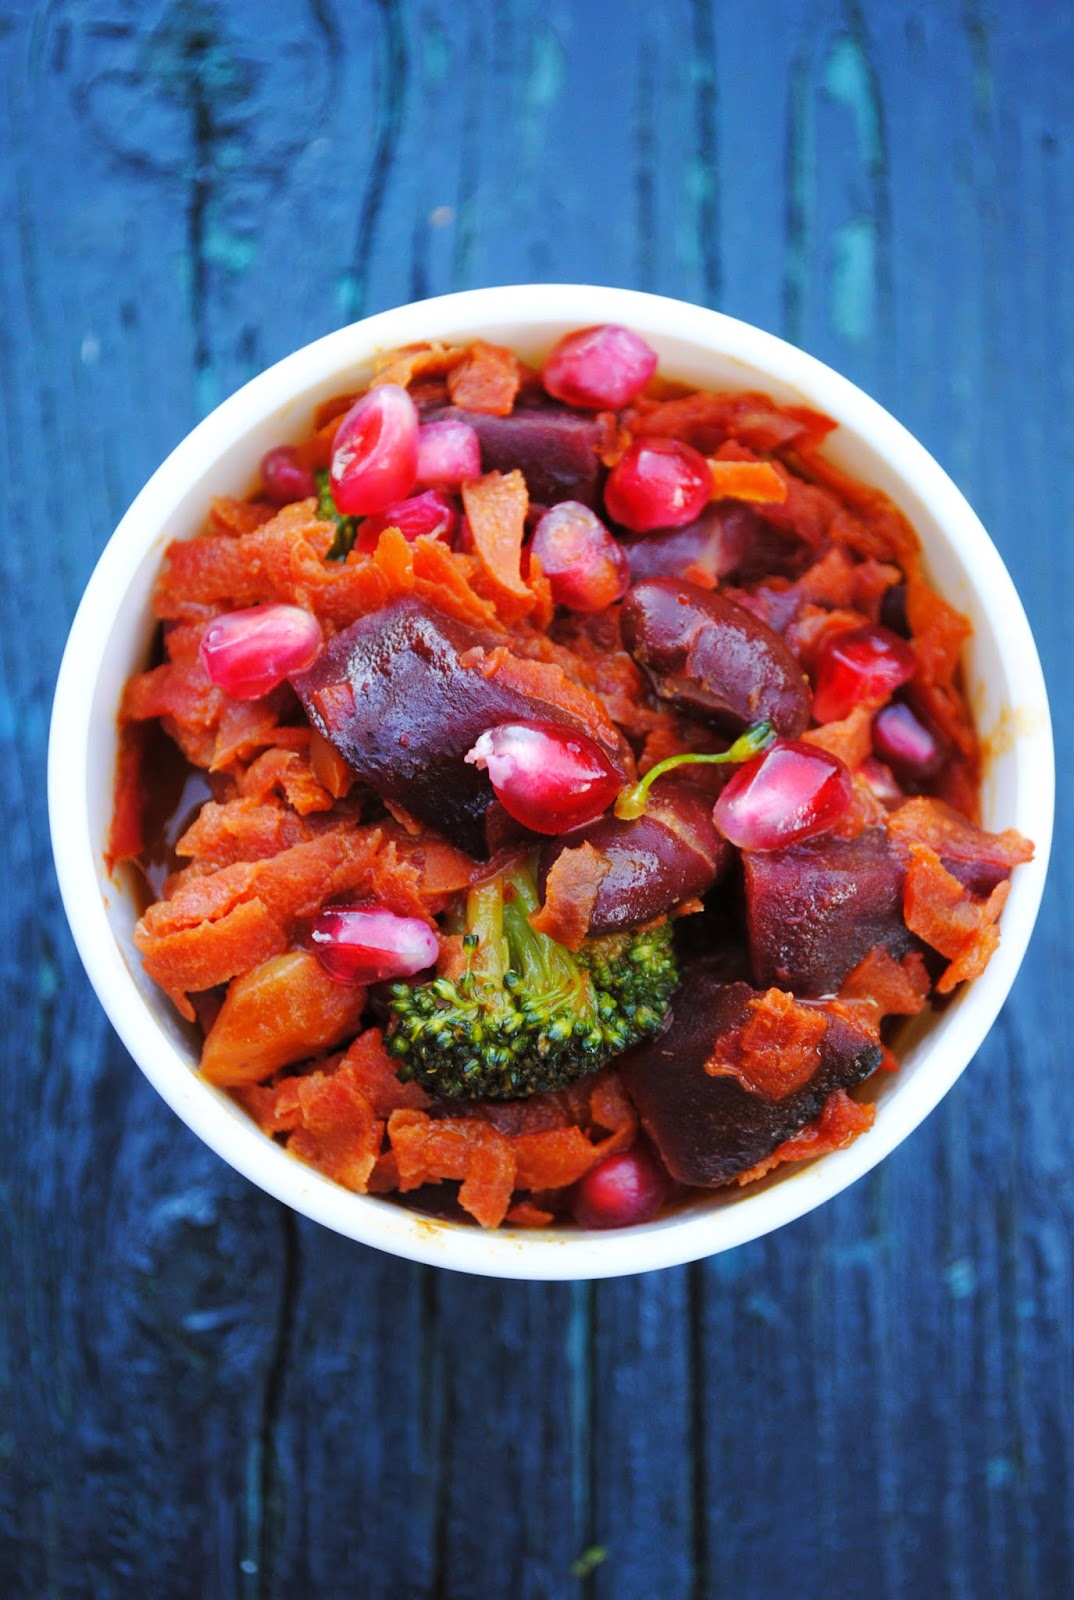 Indian food recipes vegetarian pdf to excel vegan recipes online indian food recipes vegetarian pdf to excel forumfinder Image collections